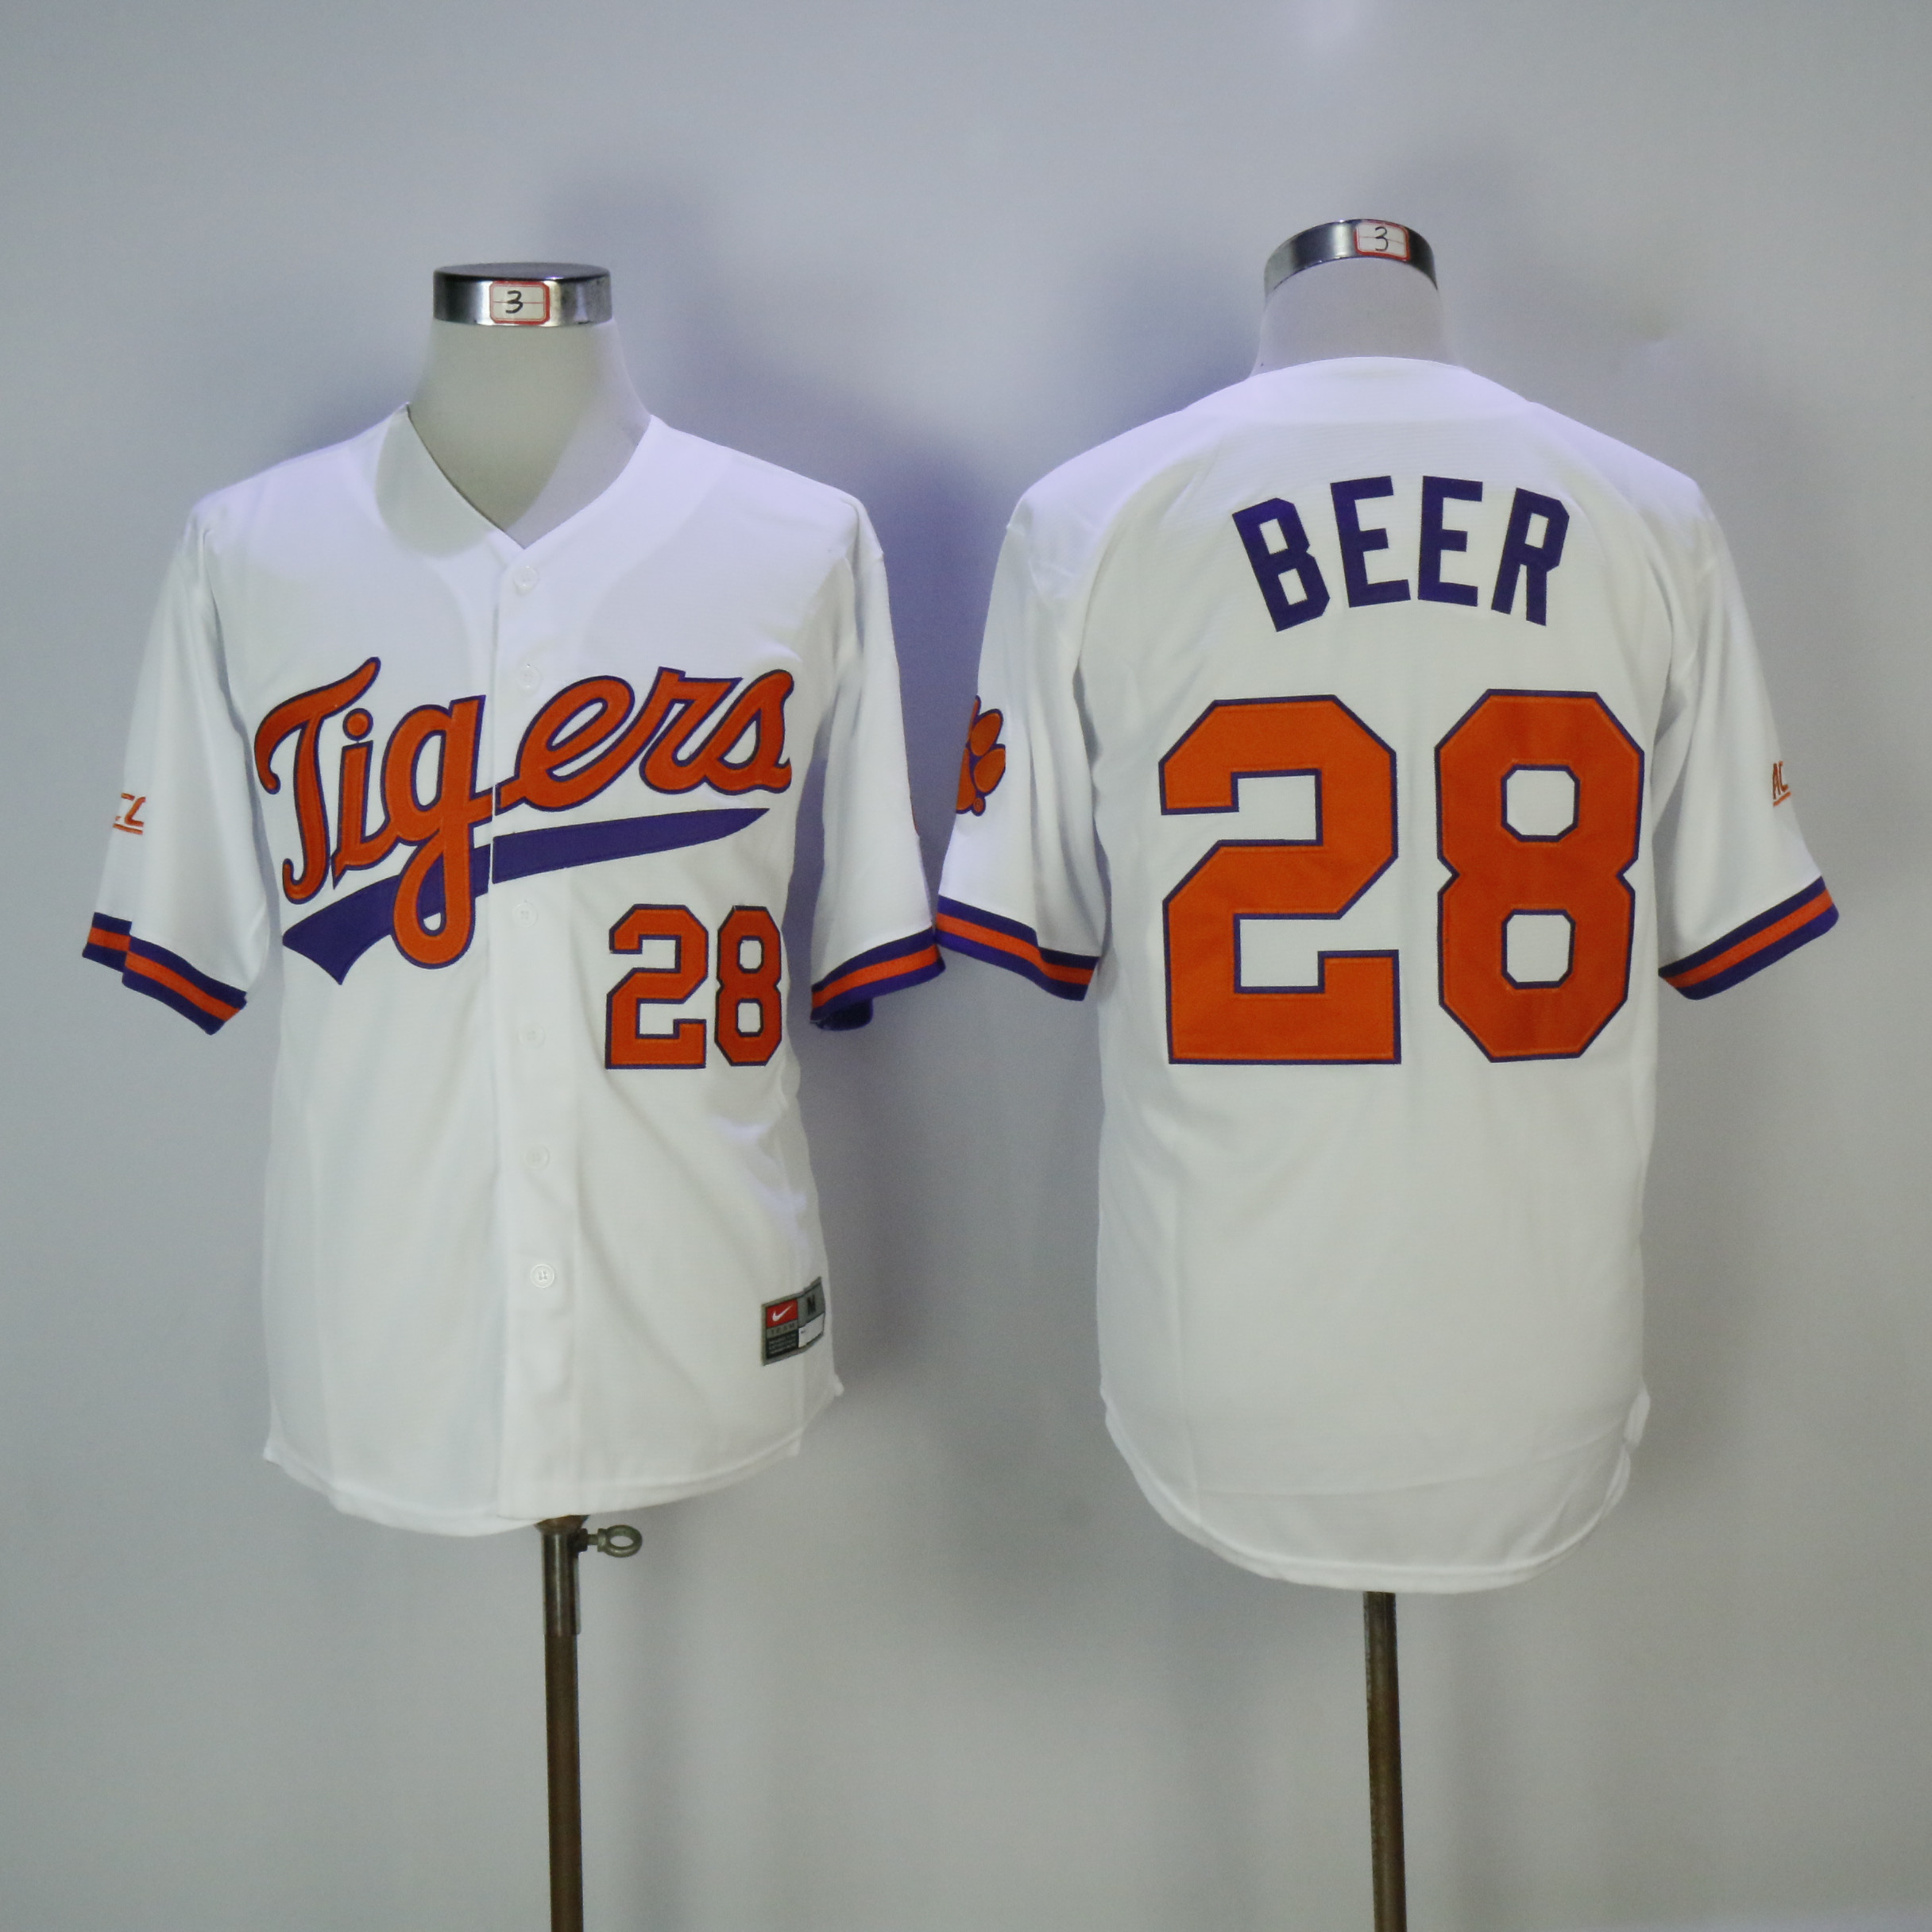 Clemson Tigers 28 Seth Beer White Nike College Baseball Jersey